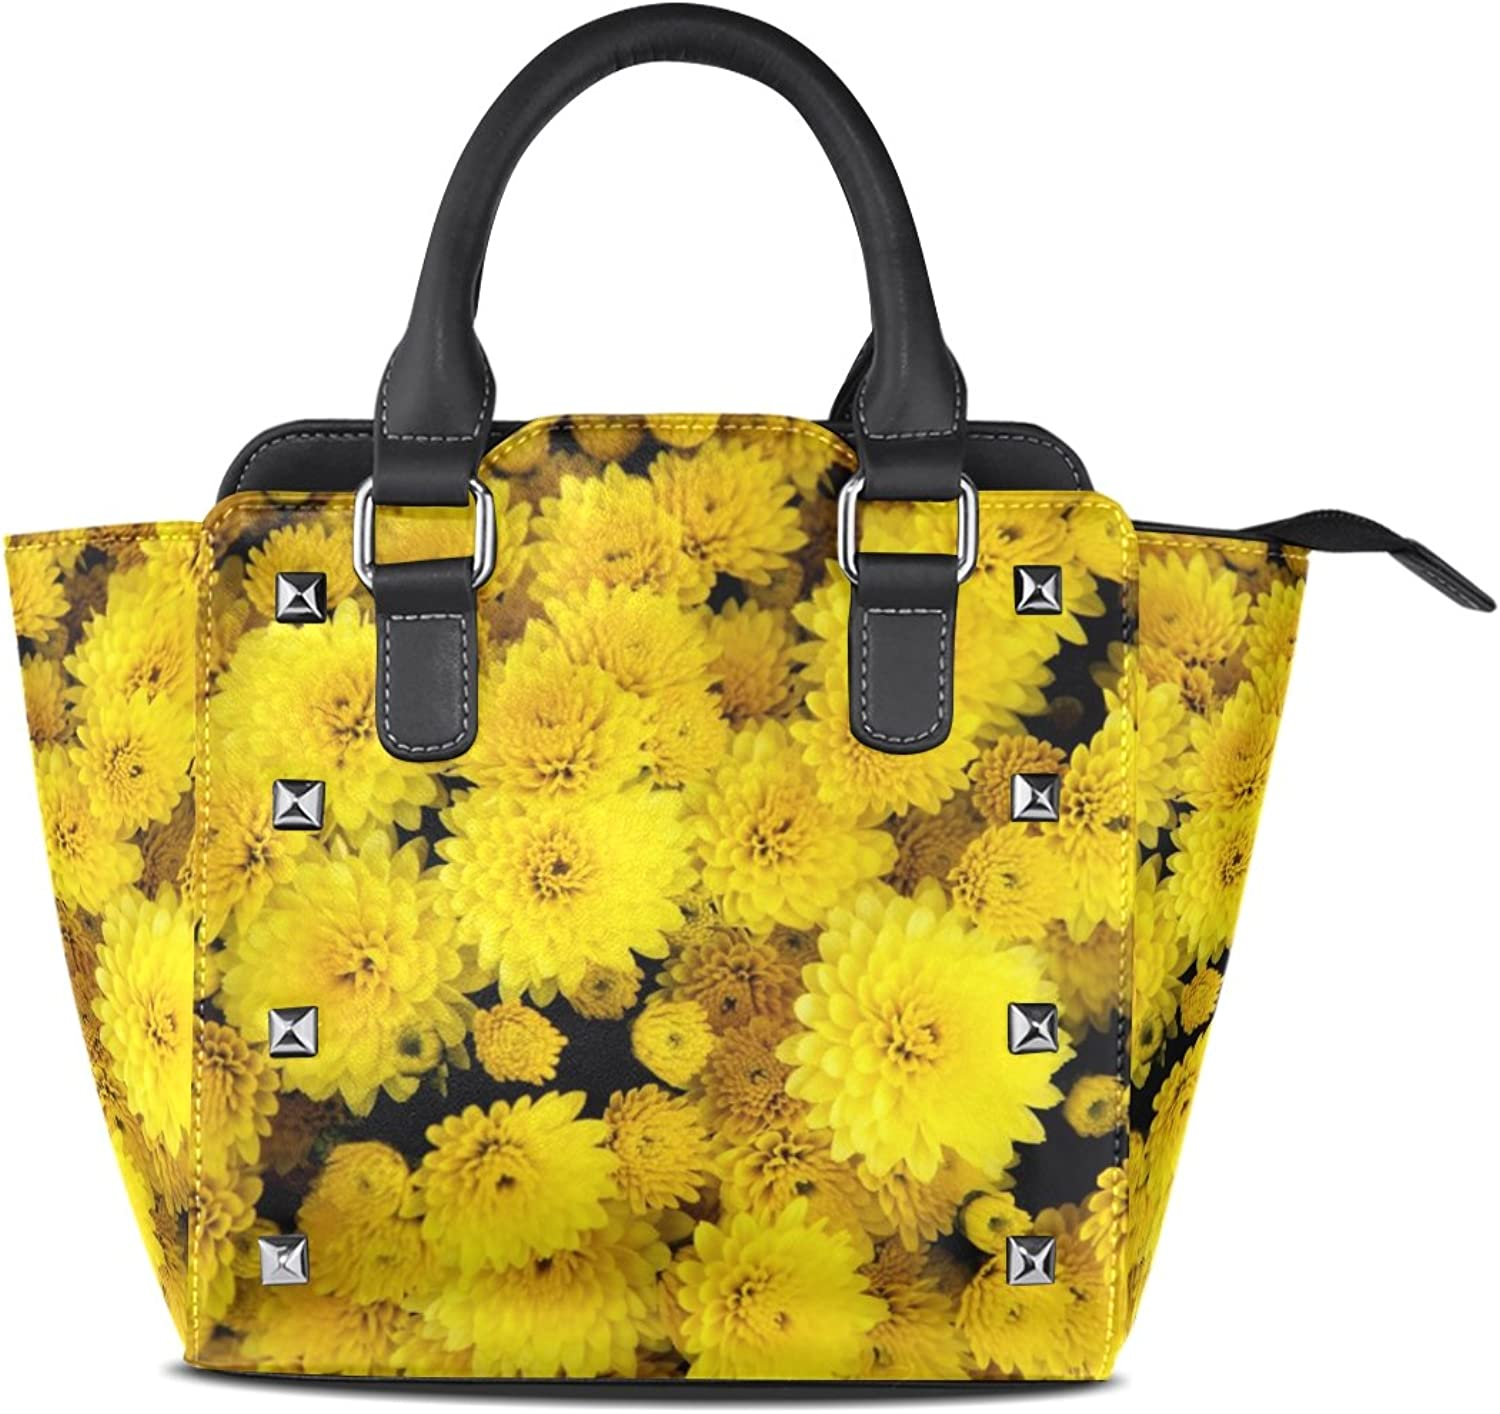 Sunlome Sunflowers Print Women's Leather Tote Shoulder Bags Handbags